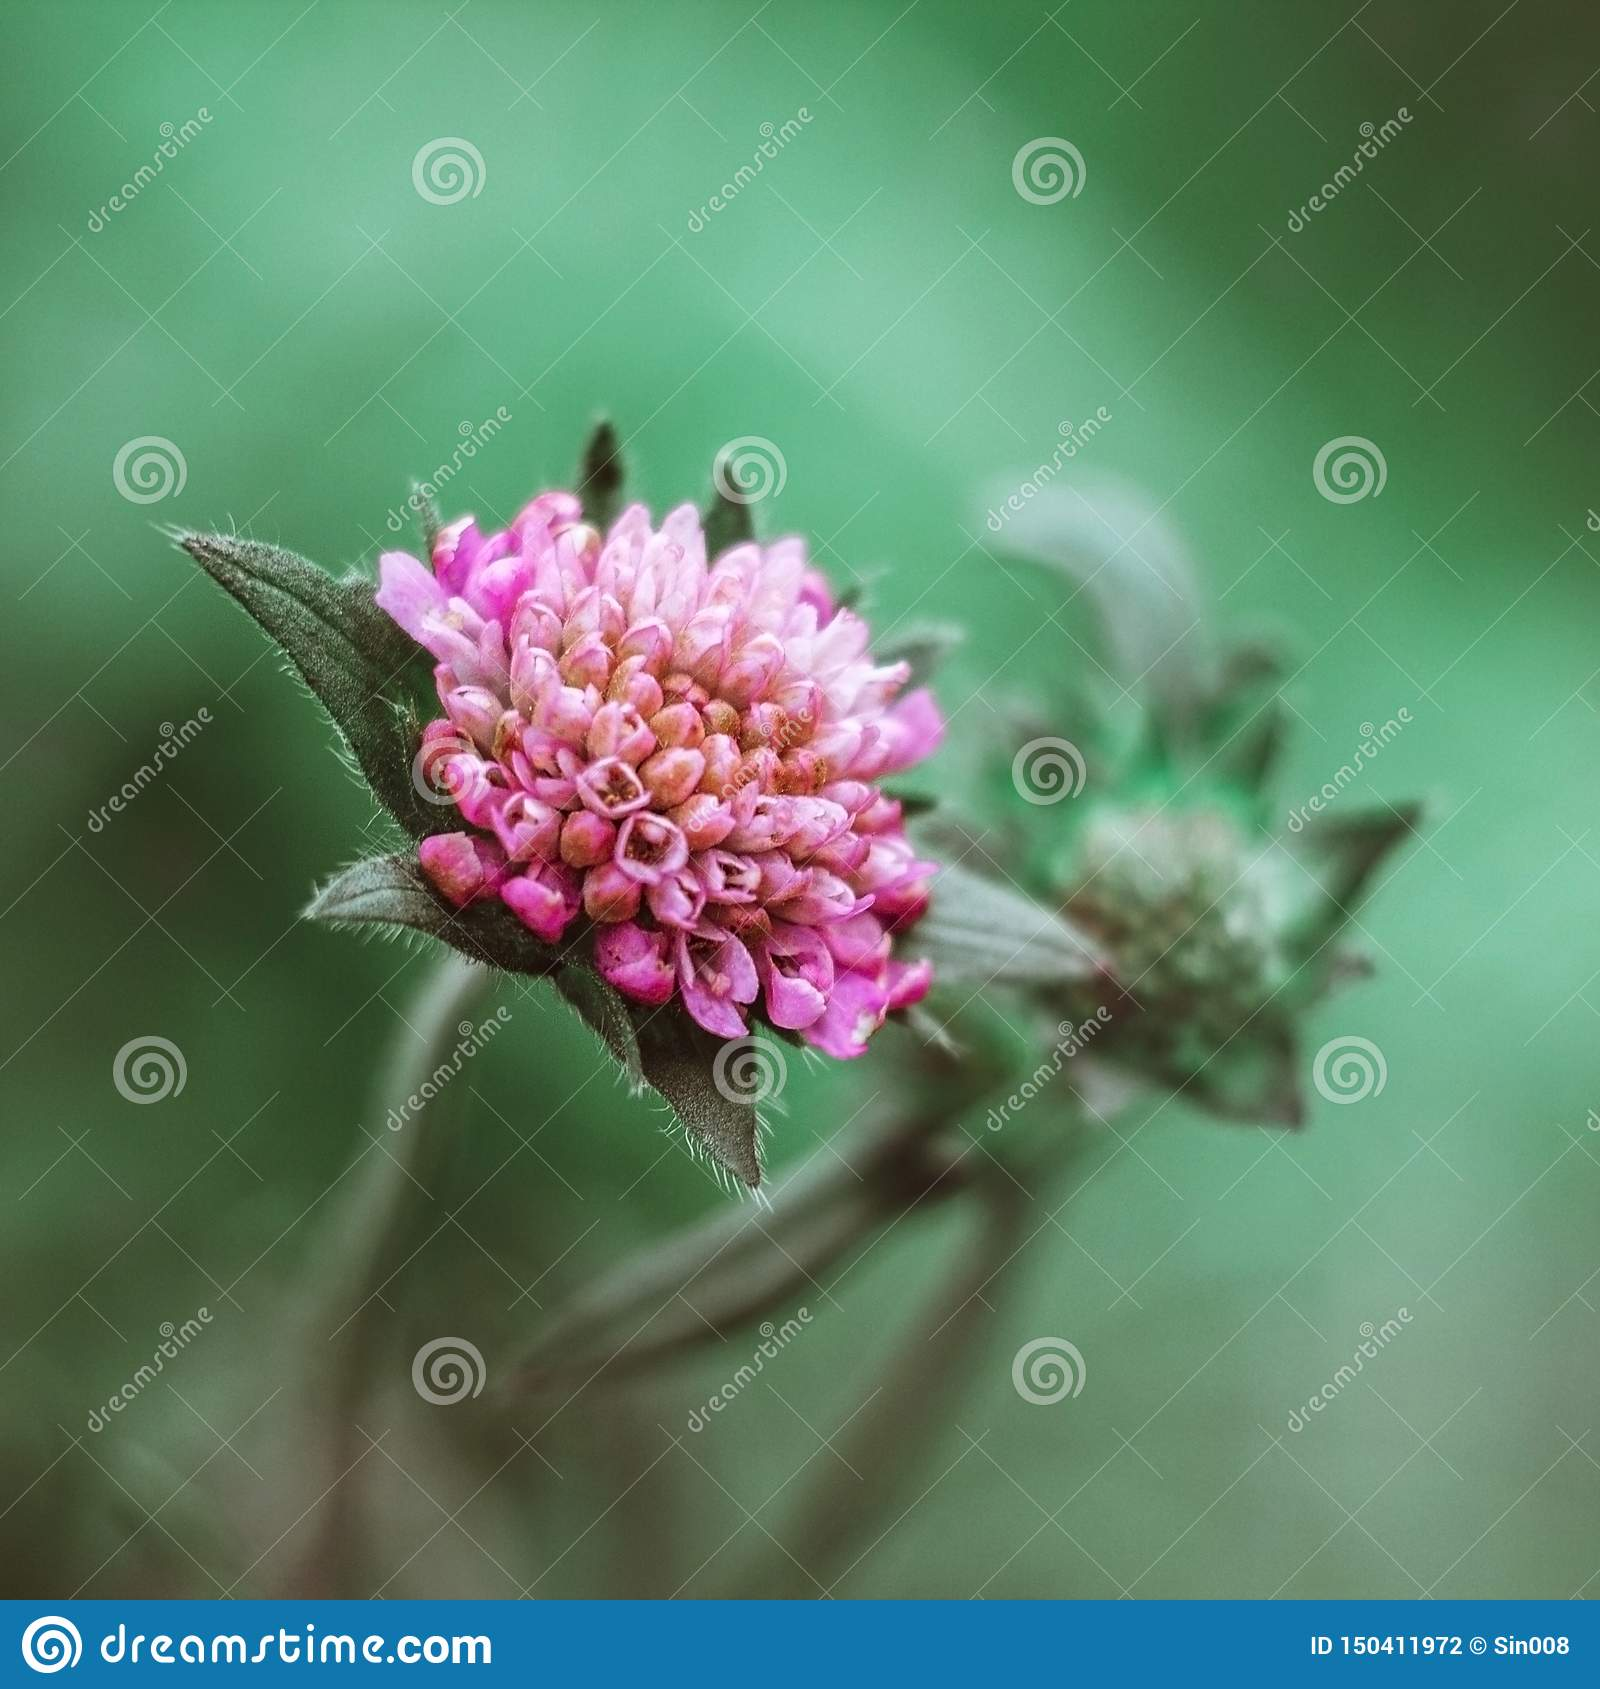 Beautiful pink flower field scabious, gypsy rose, pincushion, knautia arvensis on green background close up. Meadow, field flower